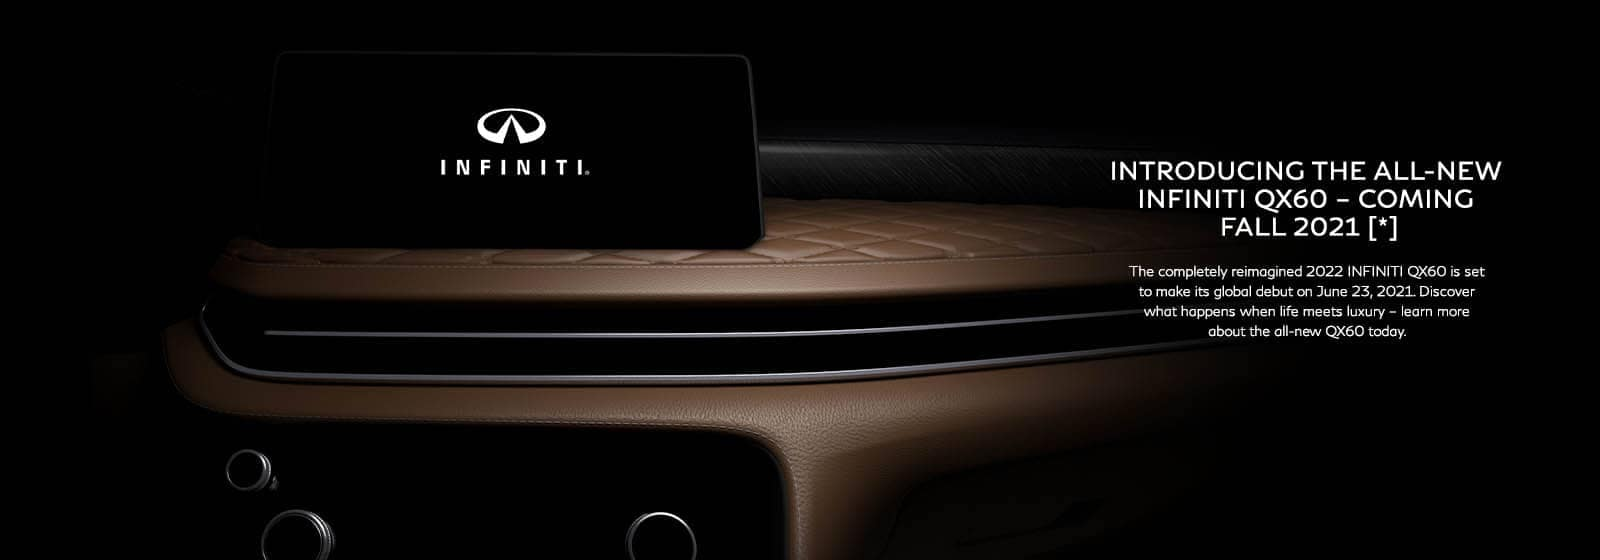 Introducing the All-New INFINITI QX60 - Coming Fall 2021 [*] - The completely reimagined 2022 INFINITI QX60 is set to make its global debut on June 23, 2021. Discover what happens when life meets luxury - learn more about the all-new QX60 today.